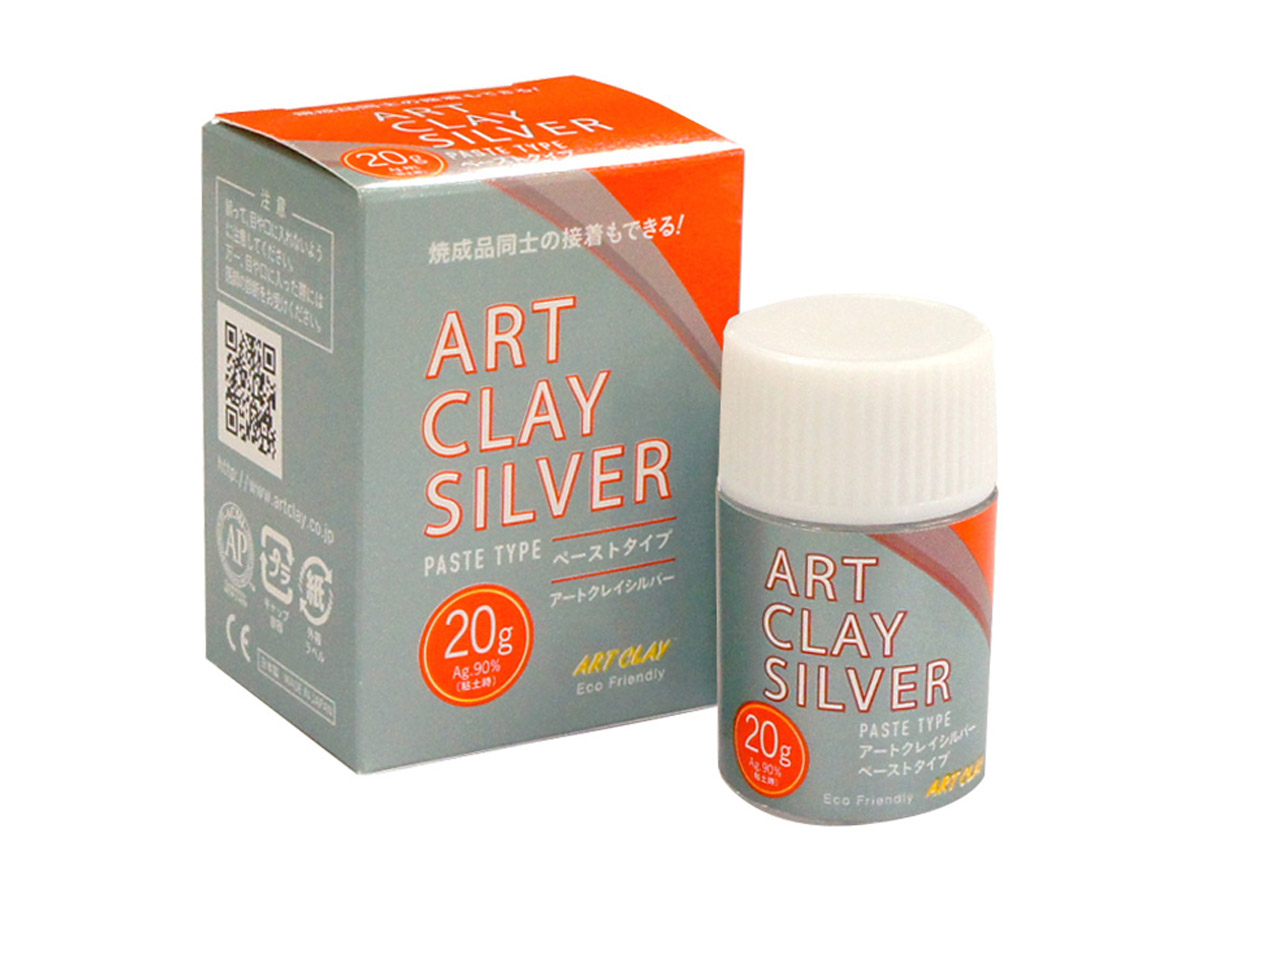 Art Clay Silver 20g Paste